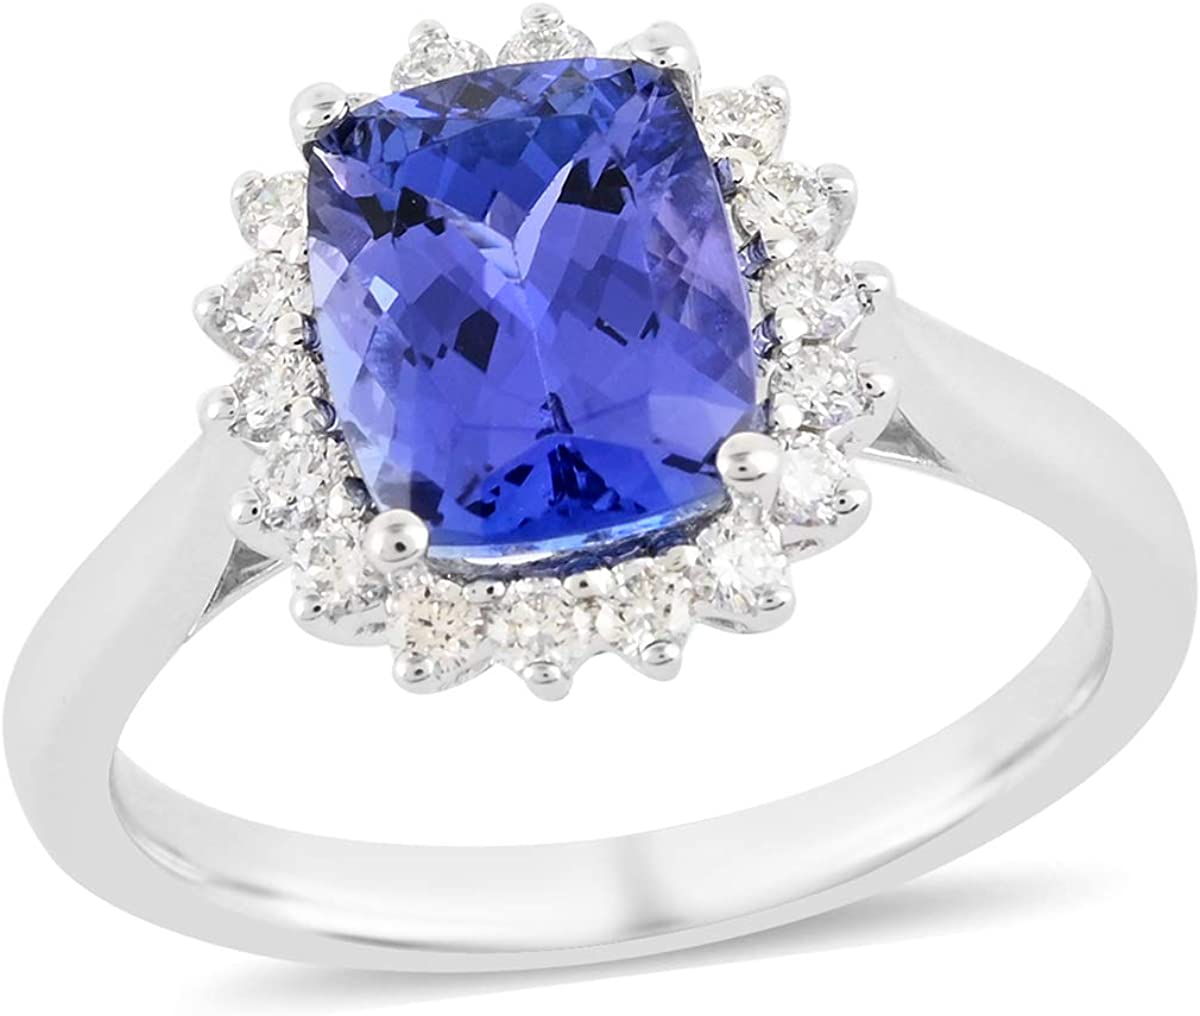 Shop Ranking TOP10 LC RHAPSODY Inventory cleanup selling sale Genuine Diamond Birthday Wh 950 Ring Gifts Halo